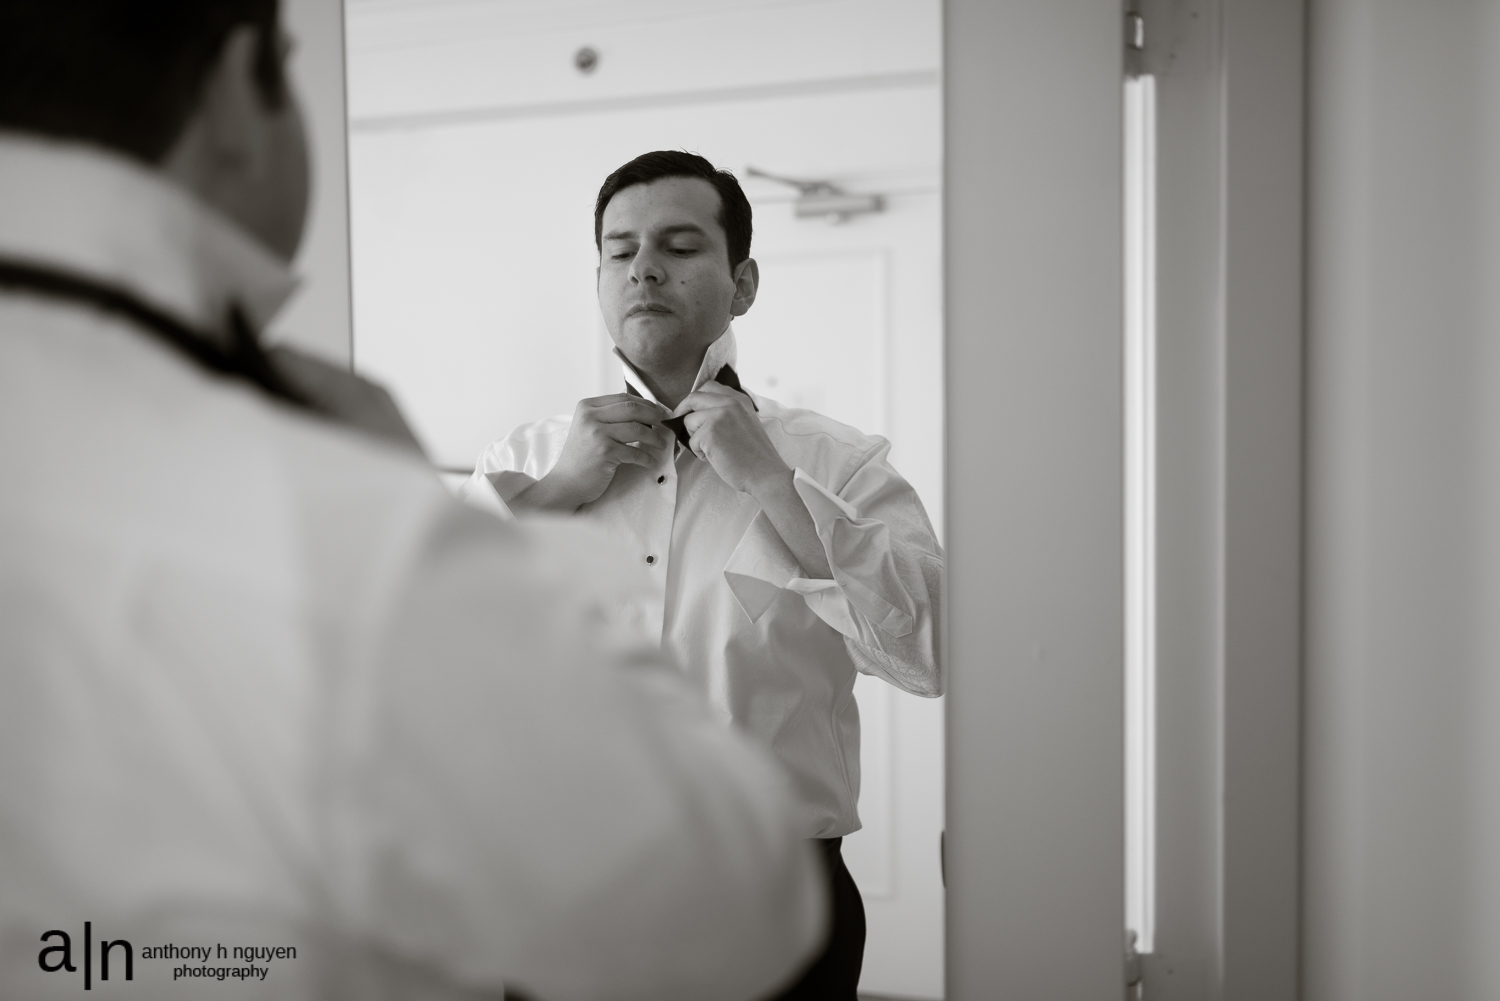 ahnp_suzanne+pedro_wedding-097.jpg